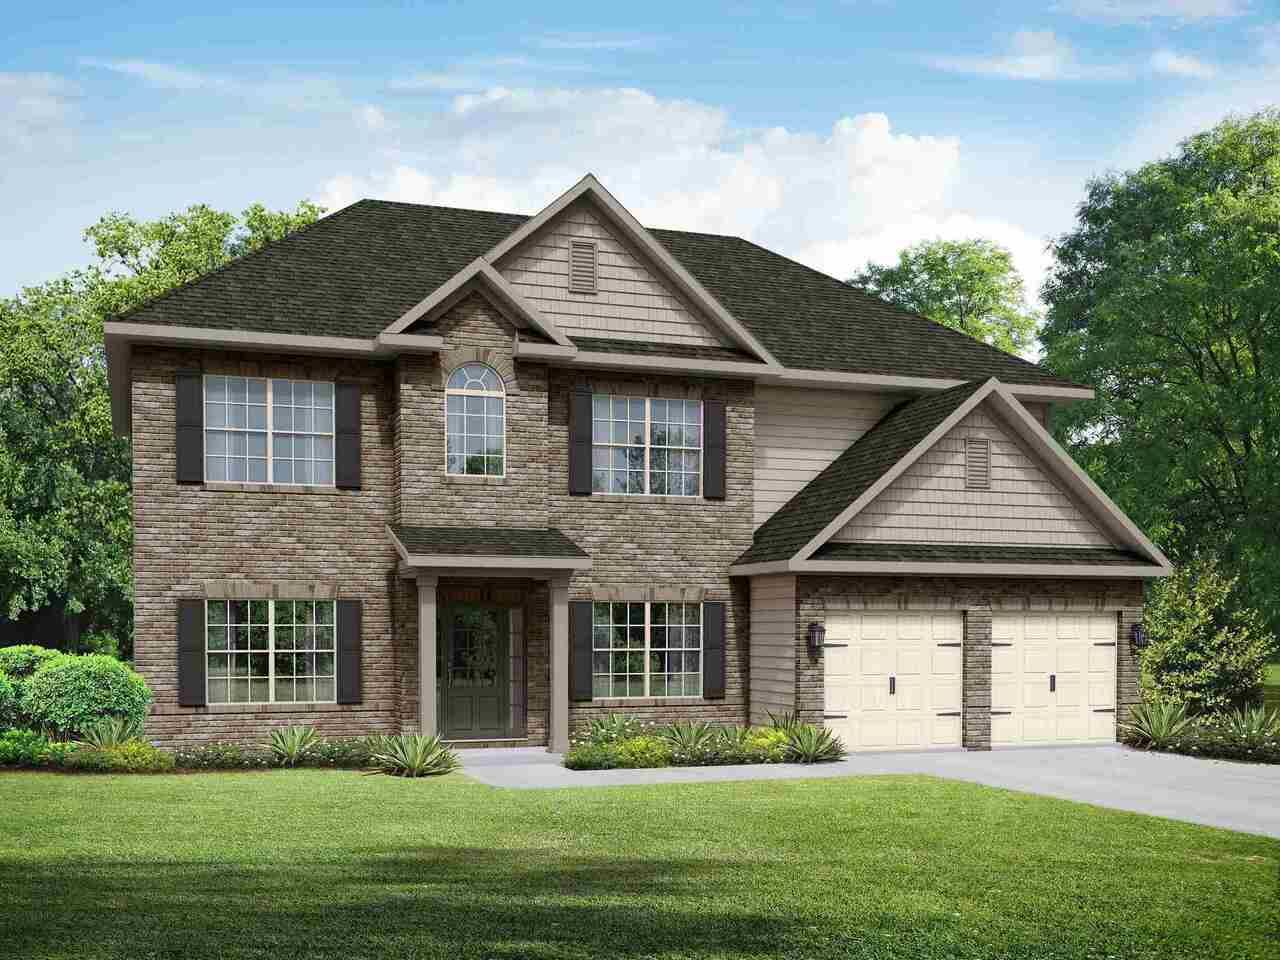 205 Expedition Dr, Ellenwood, GA 30294 - MLS#: 8909609